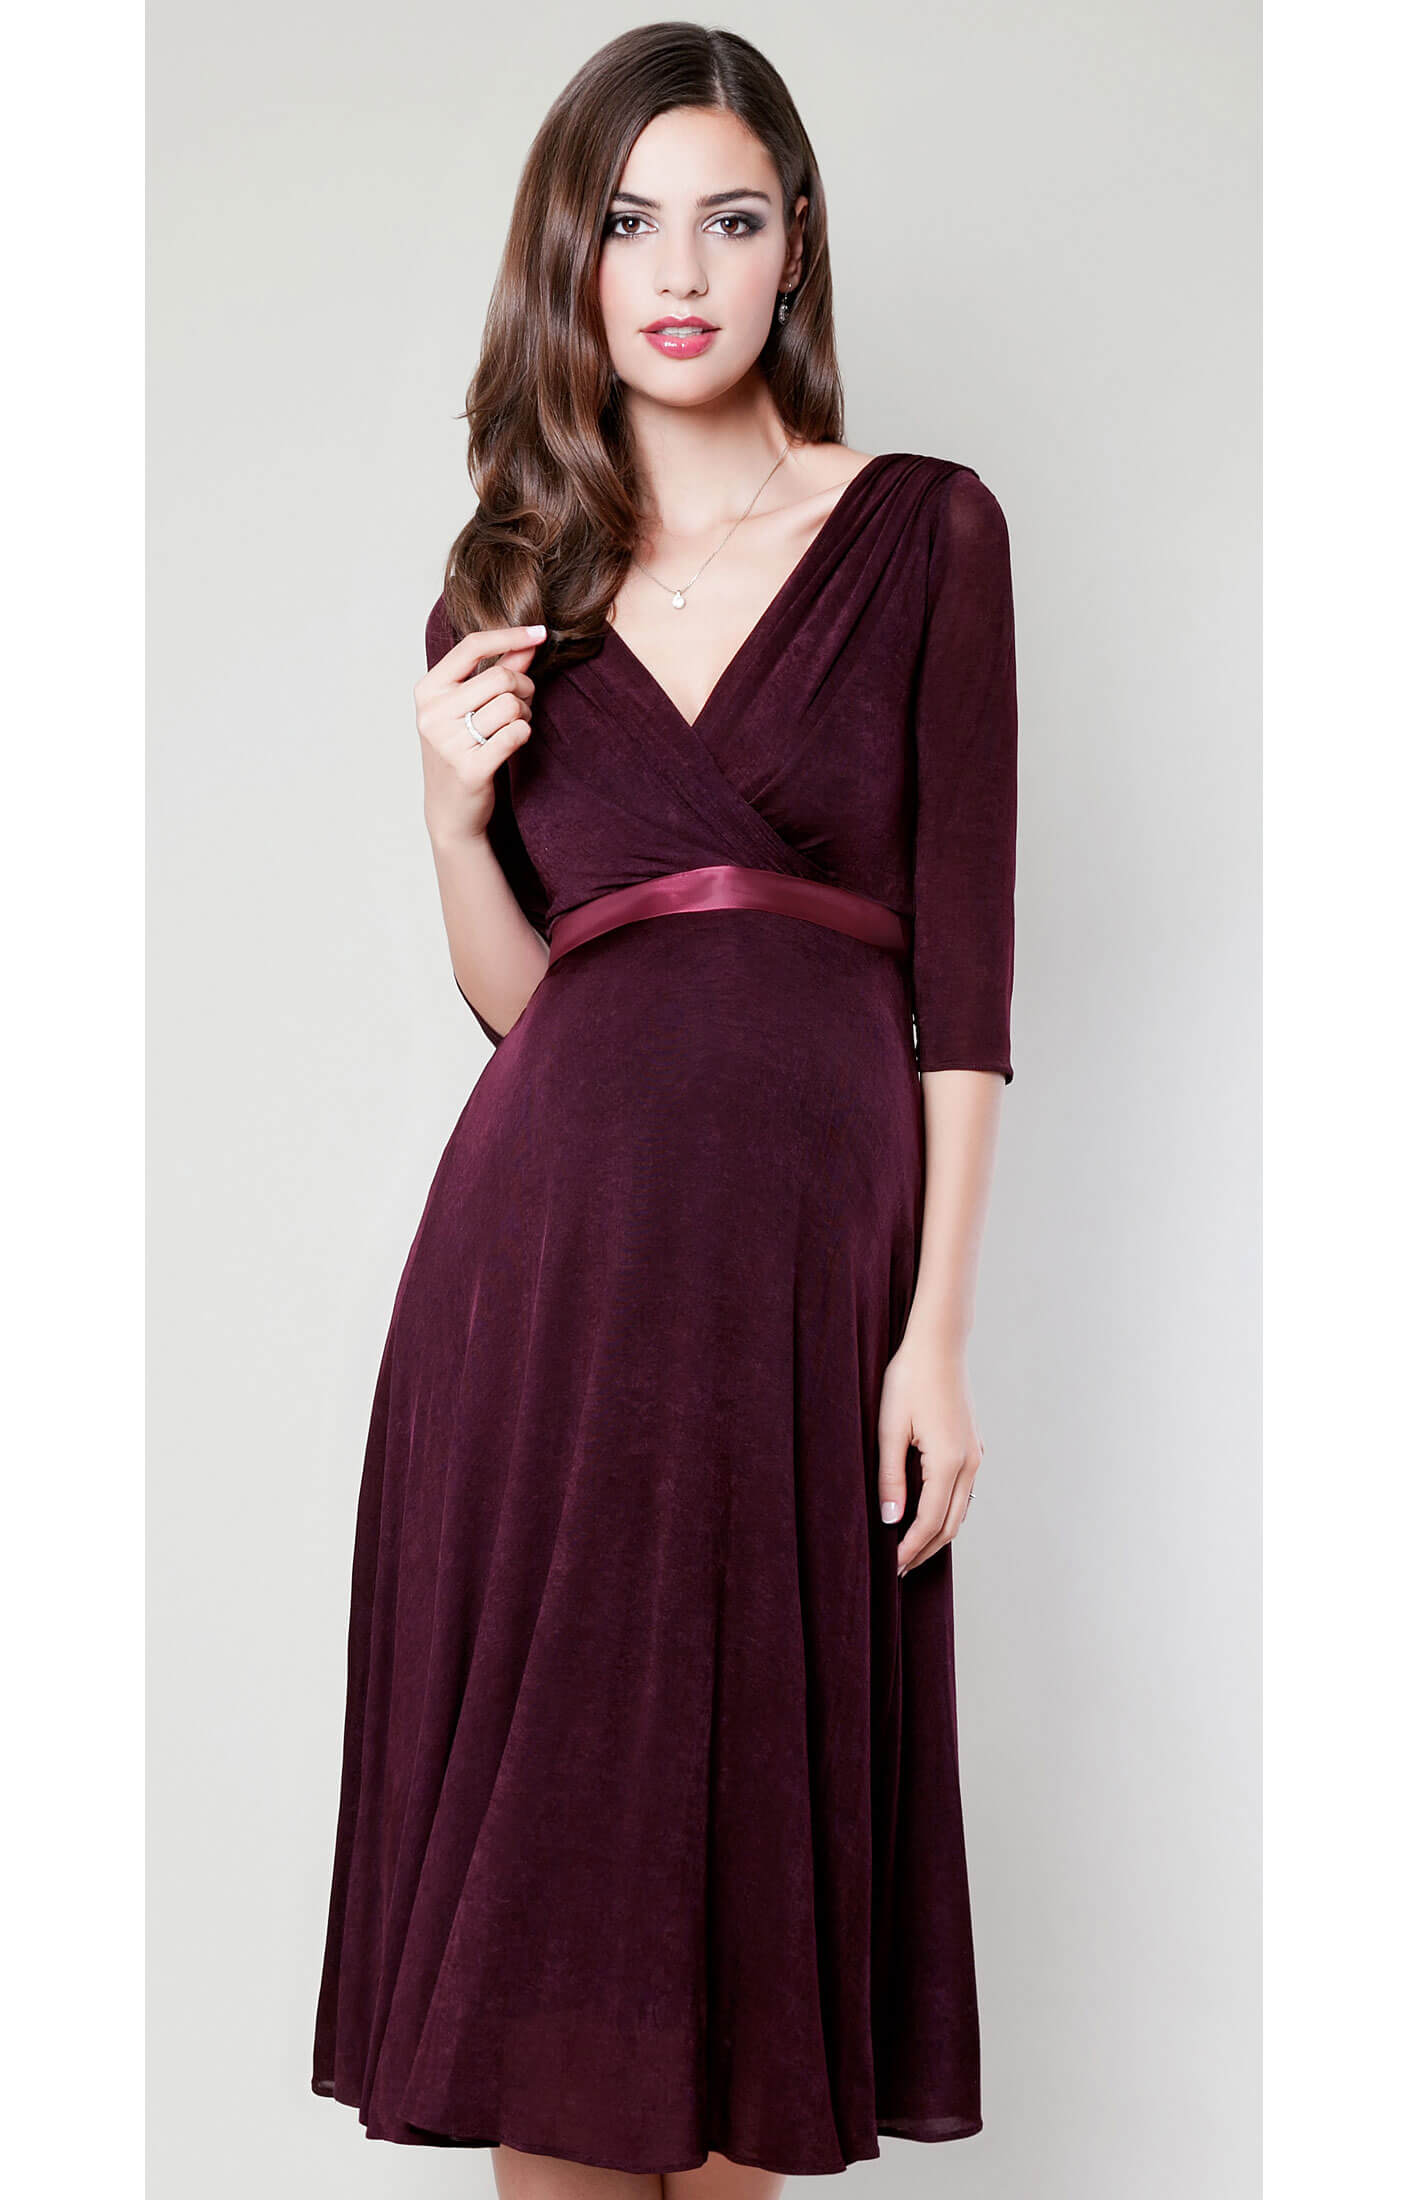 Willow maternity dress deep claret maternity wedding dresses willow maternity dress deep claret by tiffany rose ombrellifo Image collections